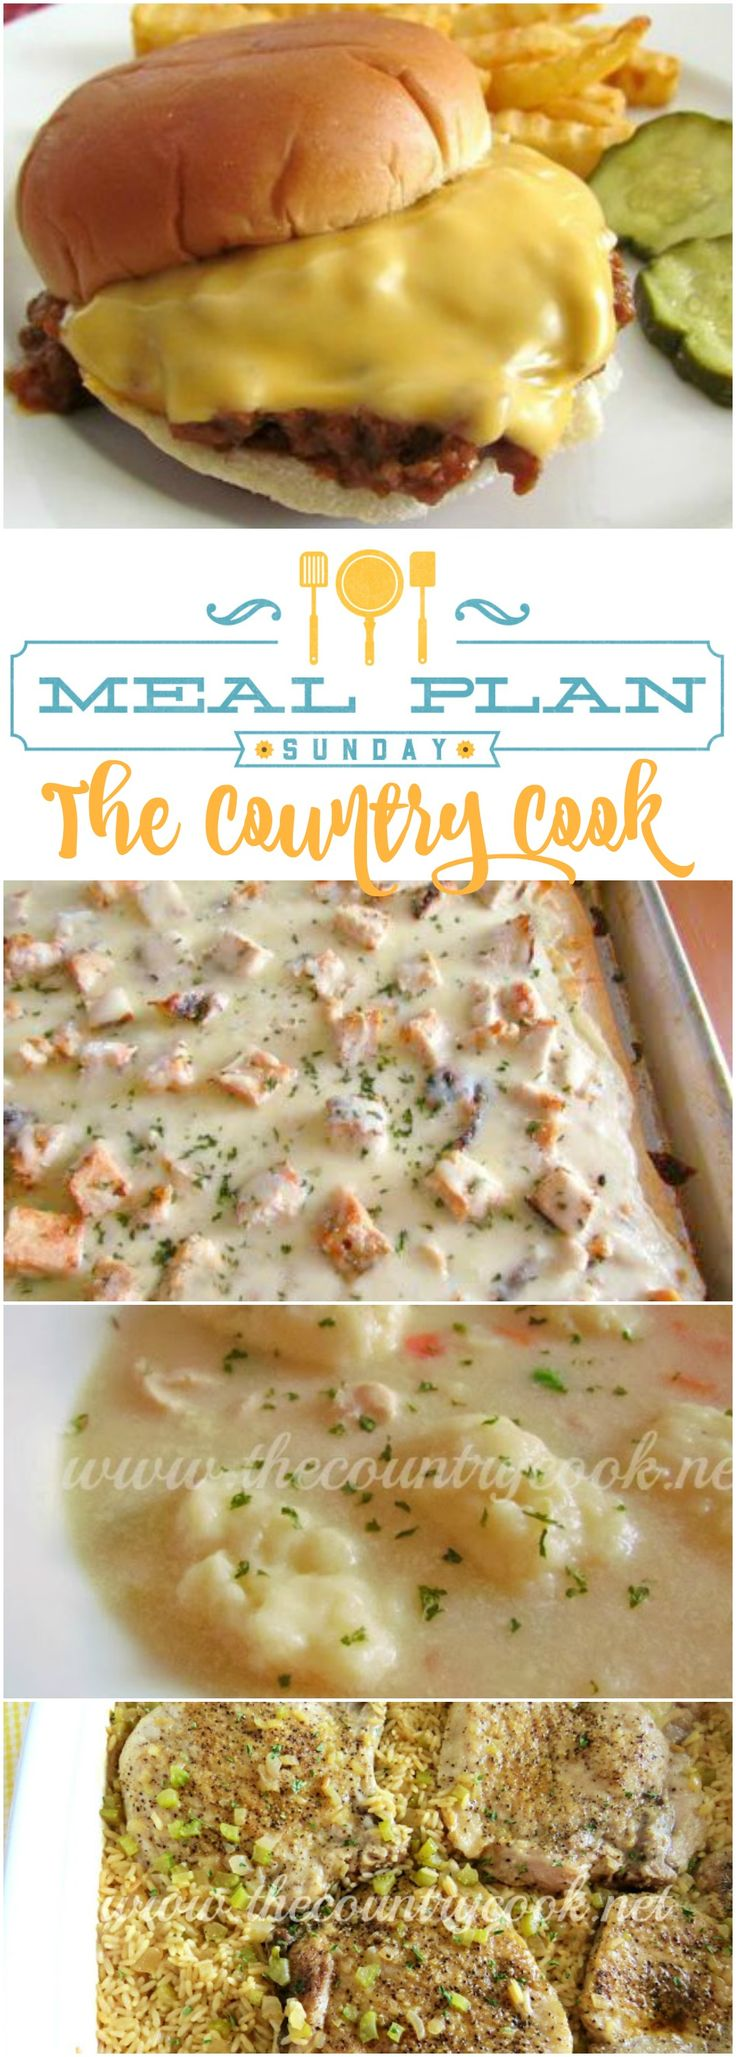 Meal Plan Sunday at The Country Cook. Featured recipes include: Homemade Crock Pot Sloppy Joes, Super Simple Grilled Chicken Alfredo Pizza, Chicken and Drop Dumplings, Baked Pork Chops & Rice, Chicken Parmesan Pizzas, Ramen Skillet Supper and desserts too!